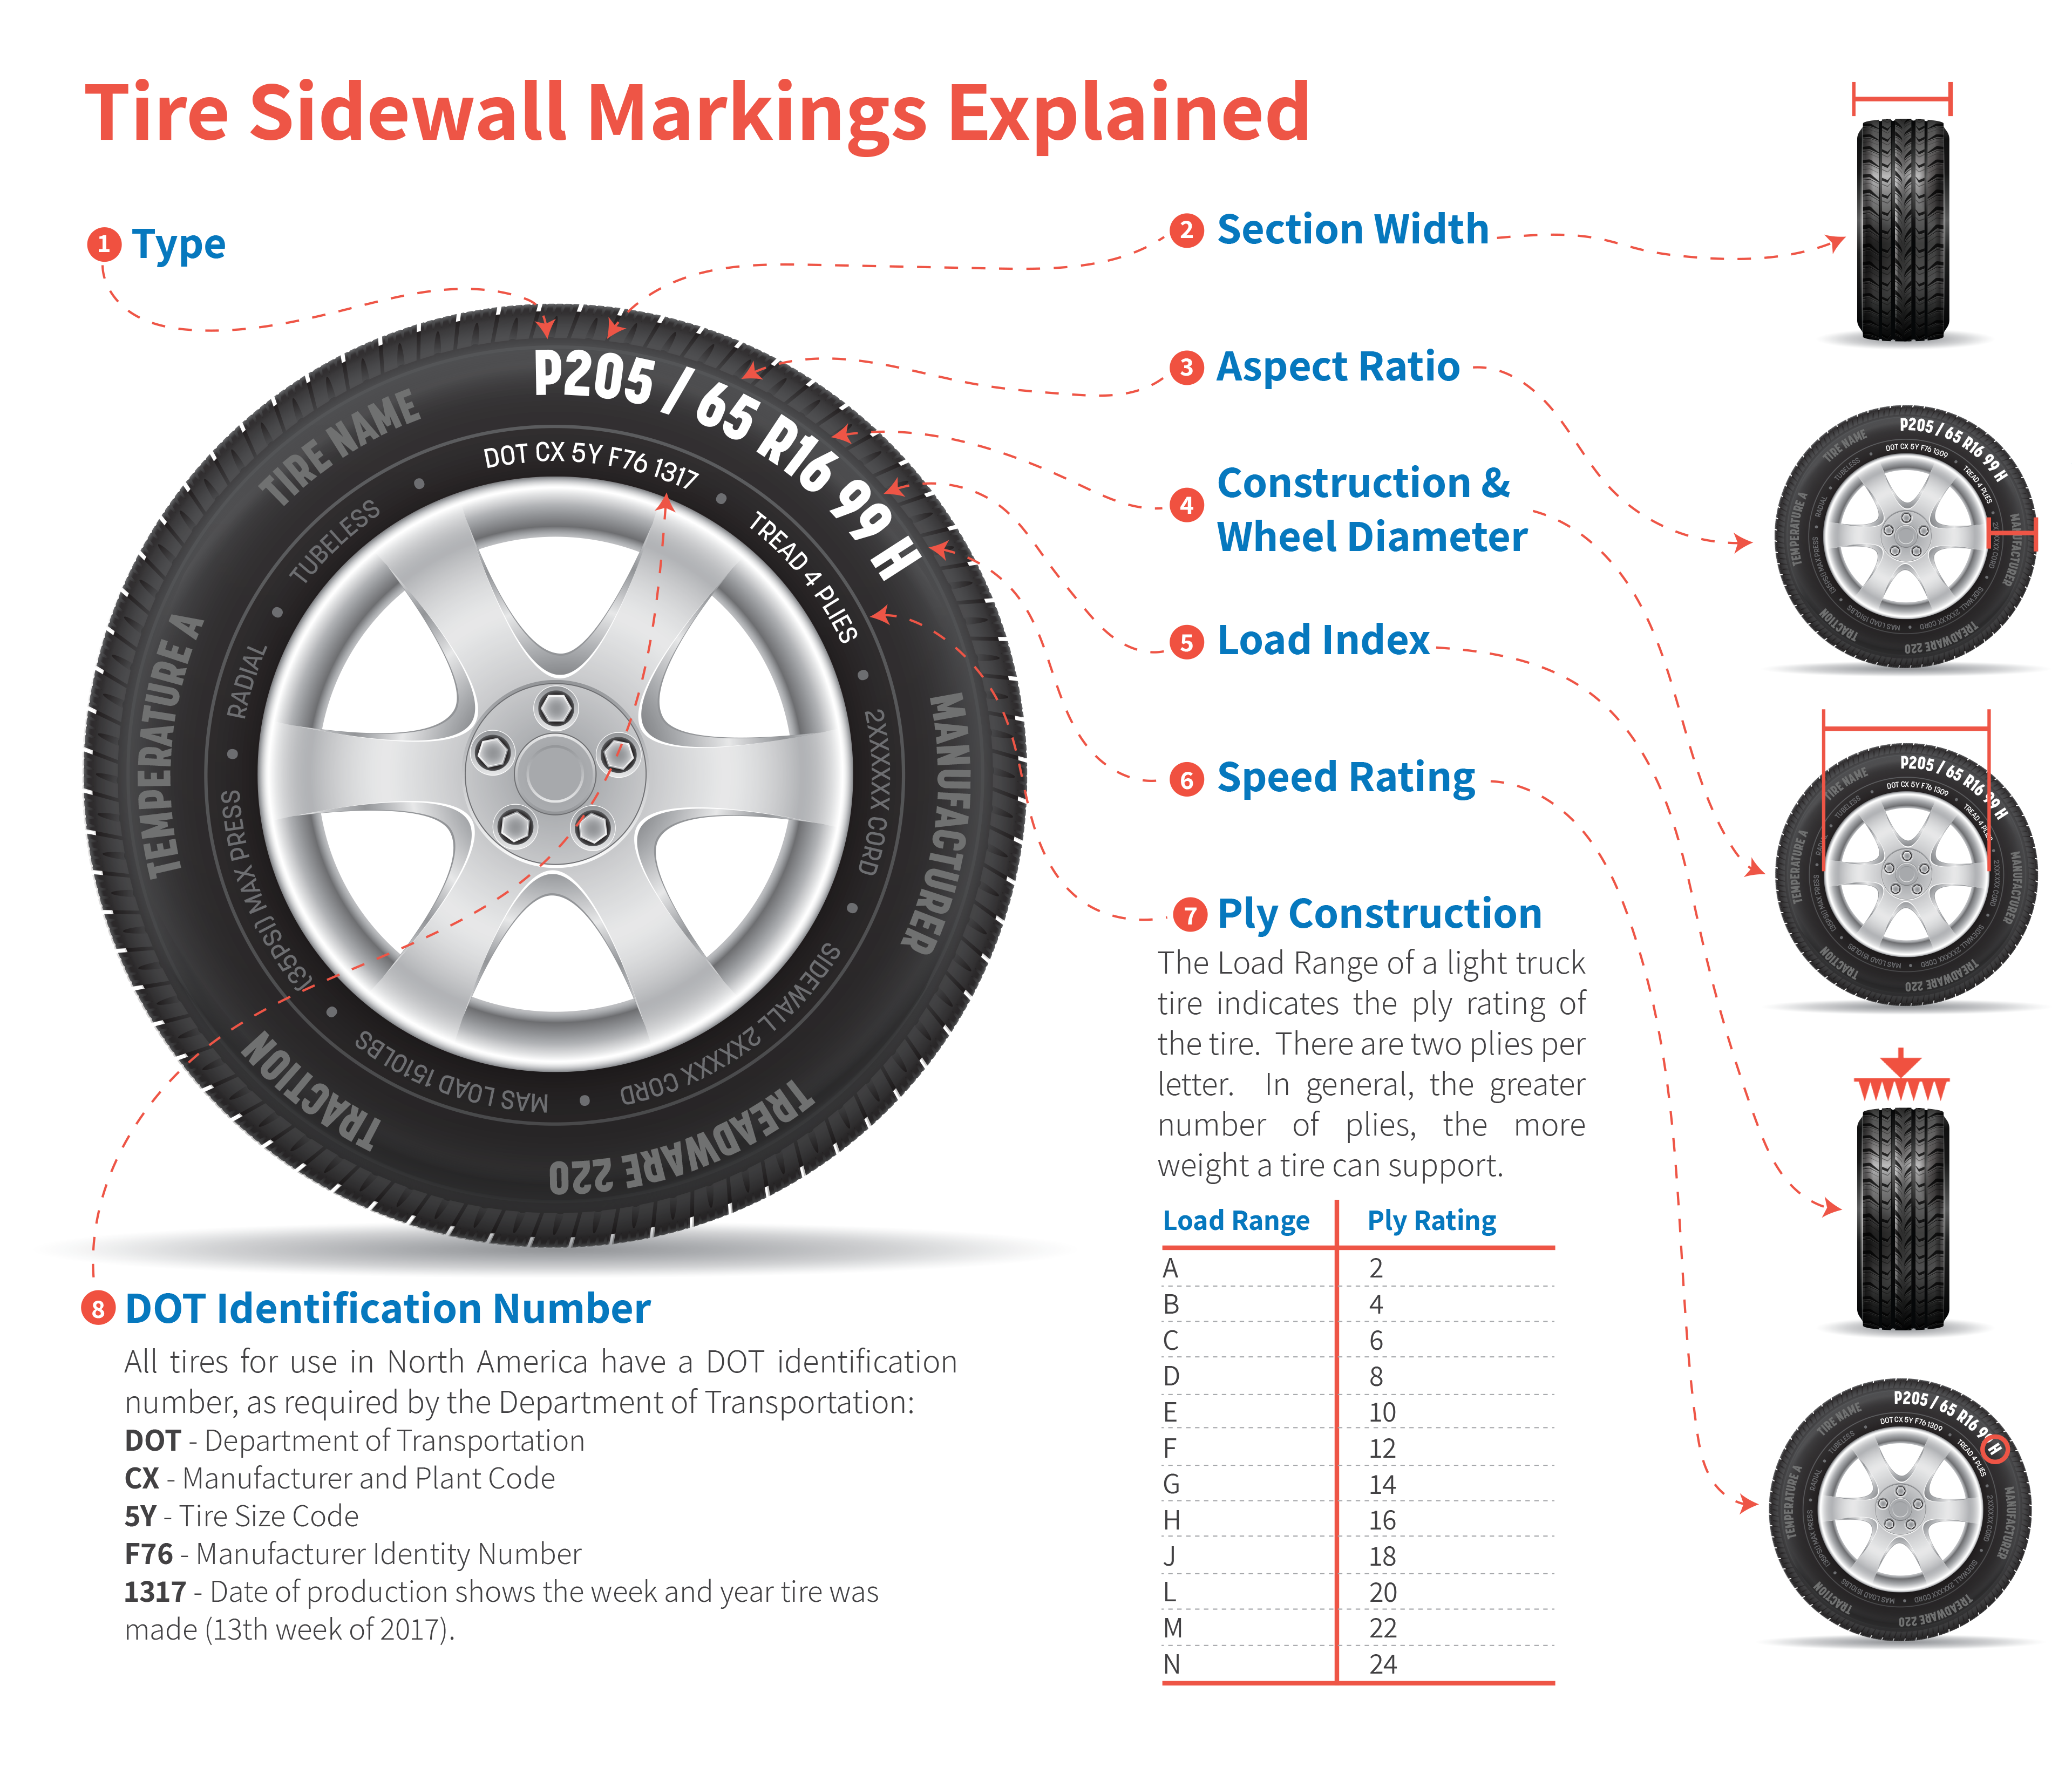 Tires 101: How to Read a Tire Sidewall - American Tire